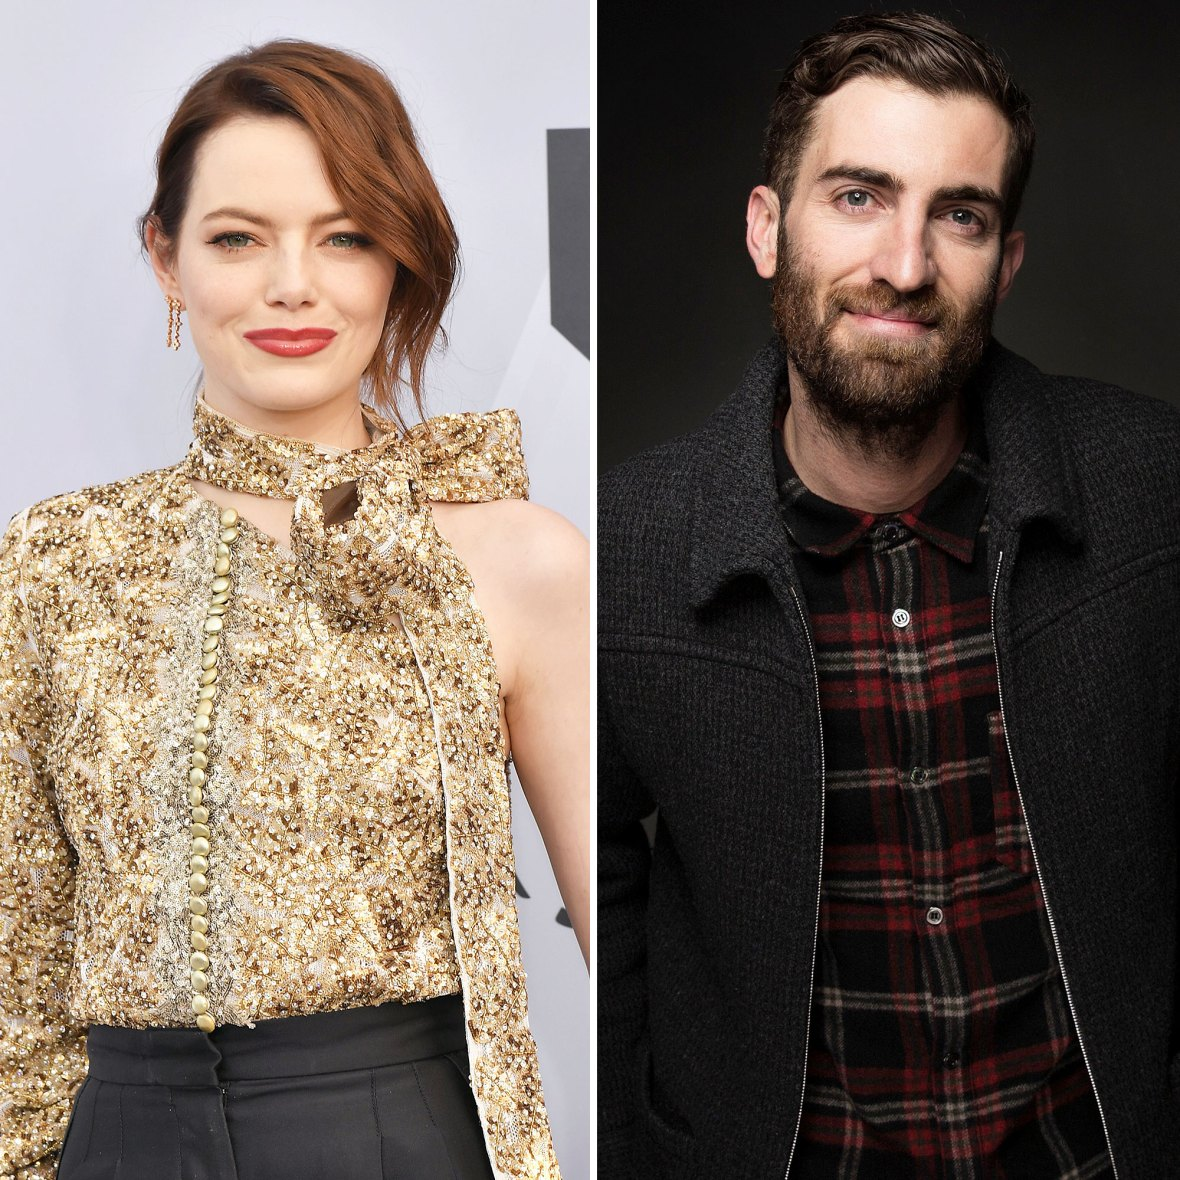 Emma-Stone-Is-Pregnant-and-Expecting-Her-First-Child-With-Dave-McCary-02